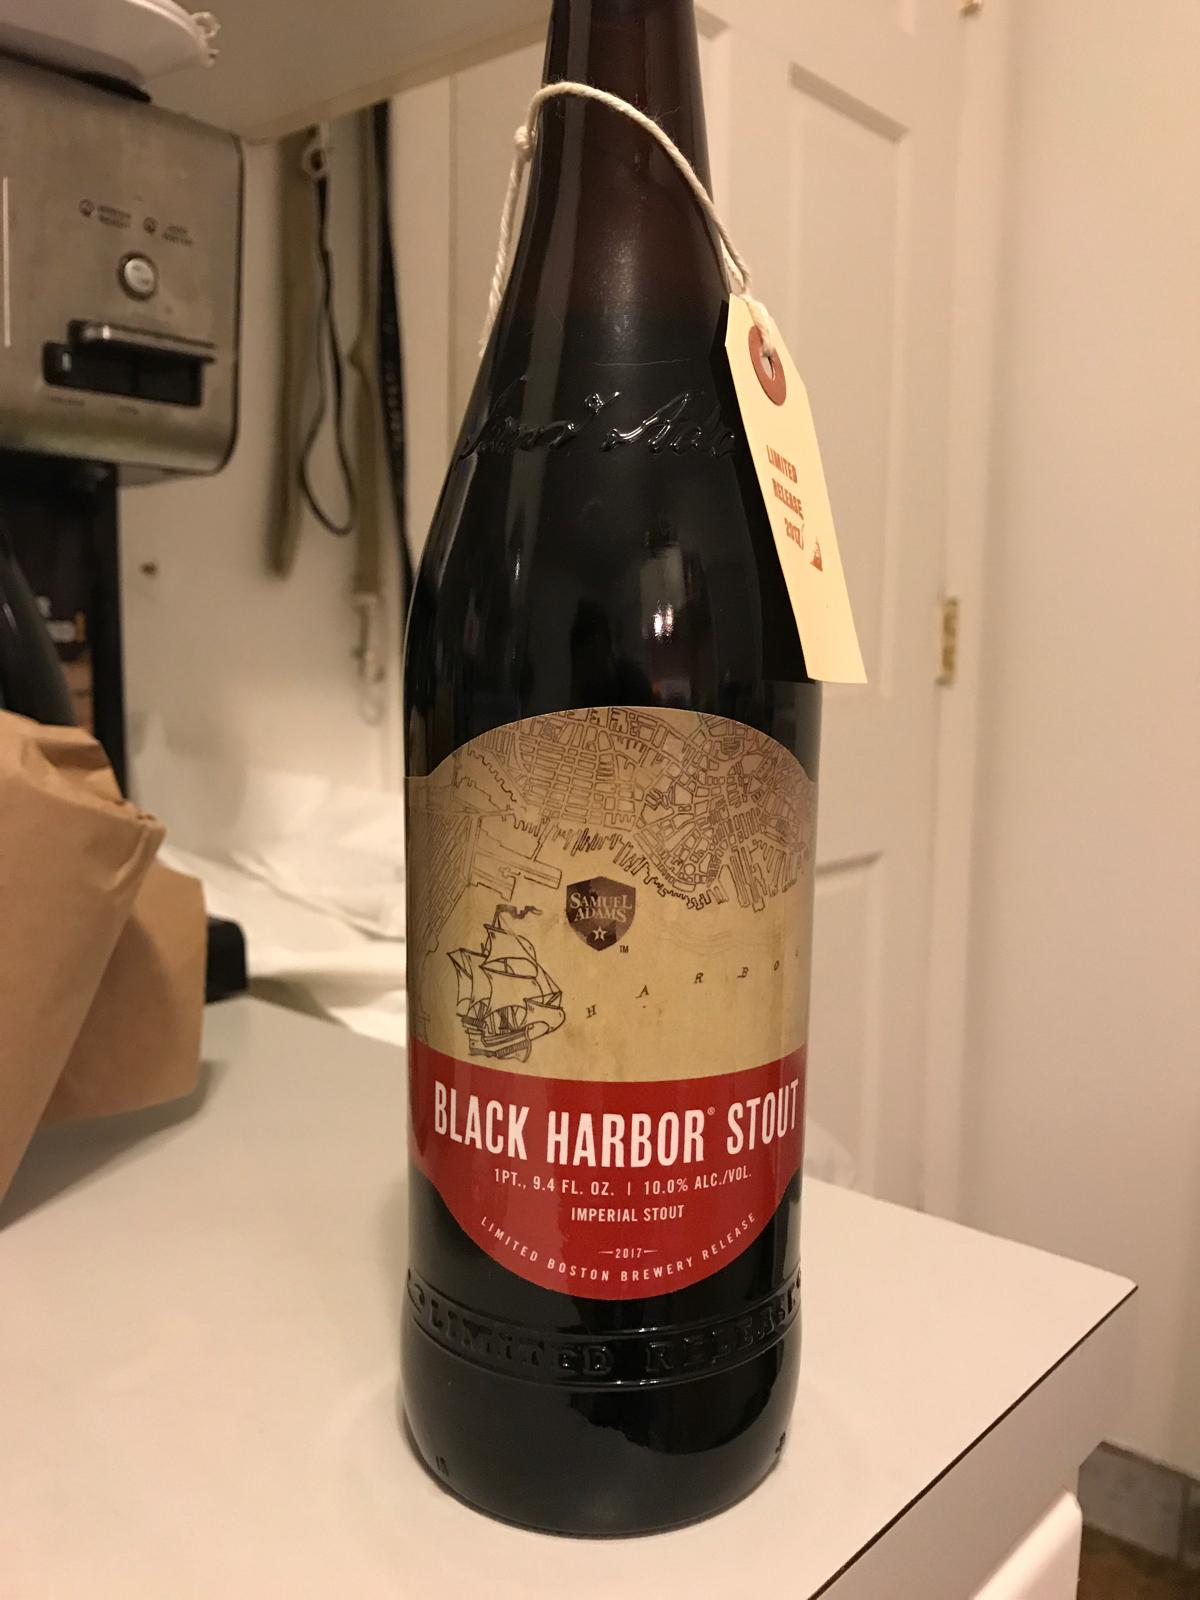 Black Harbor Stout